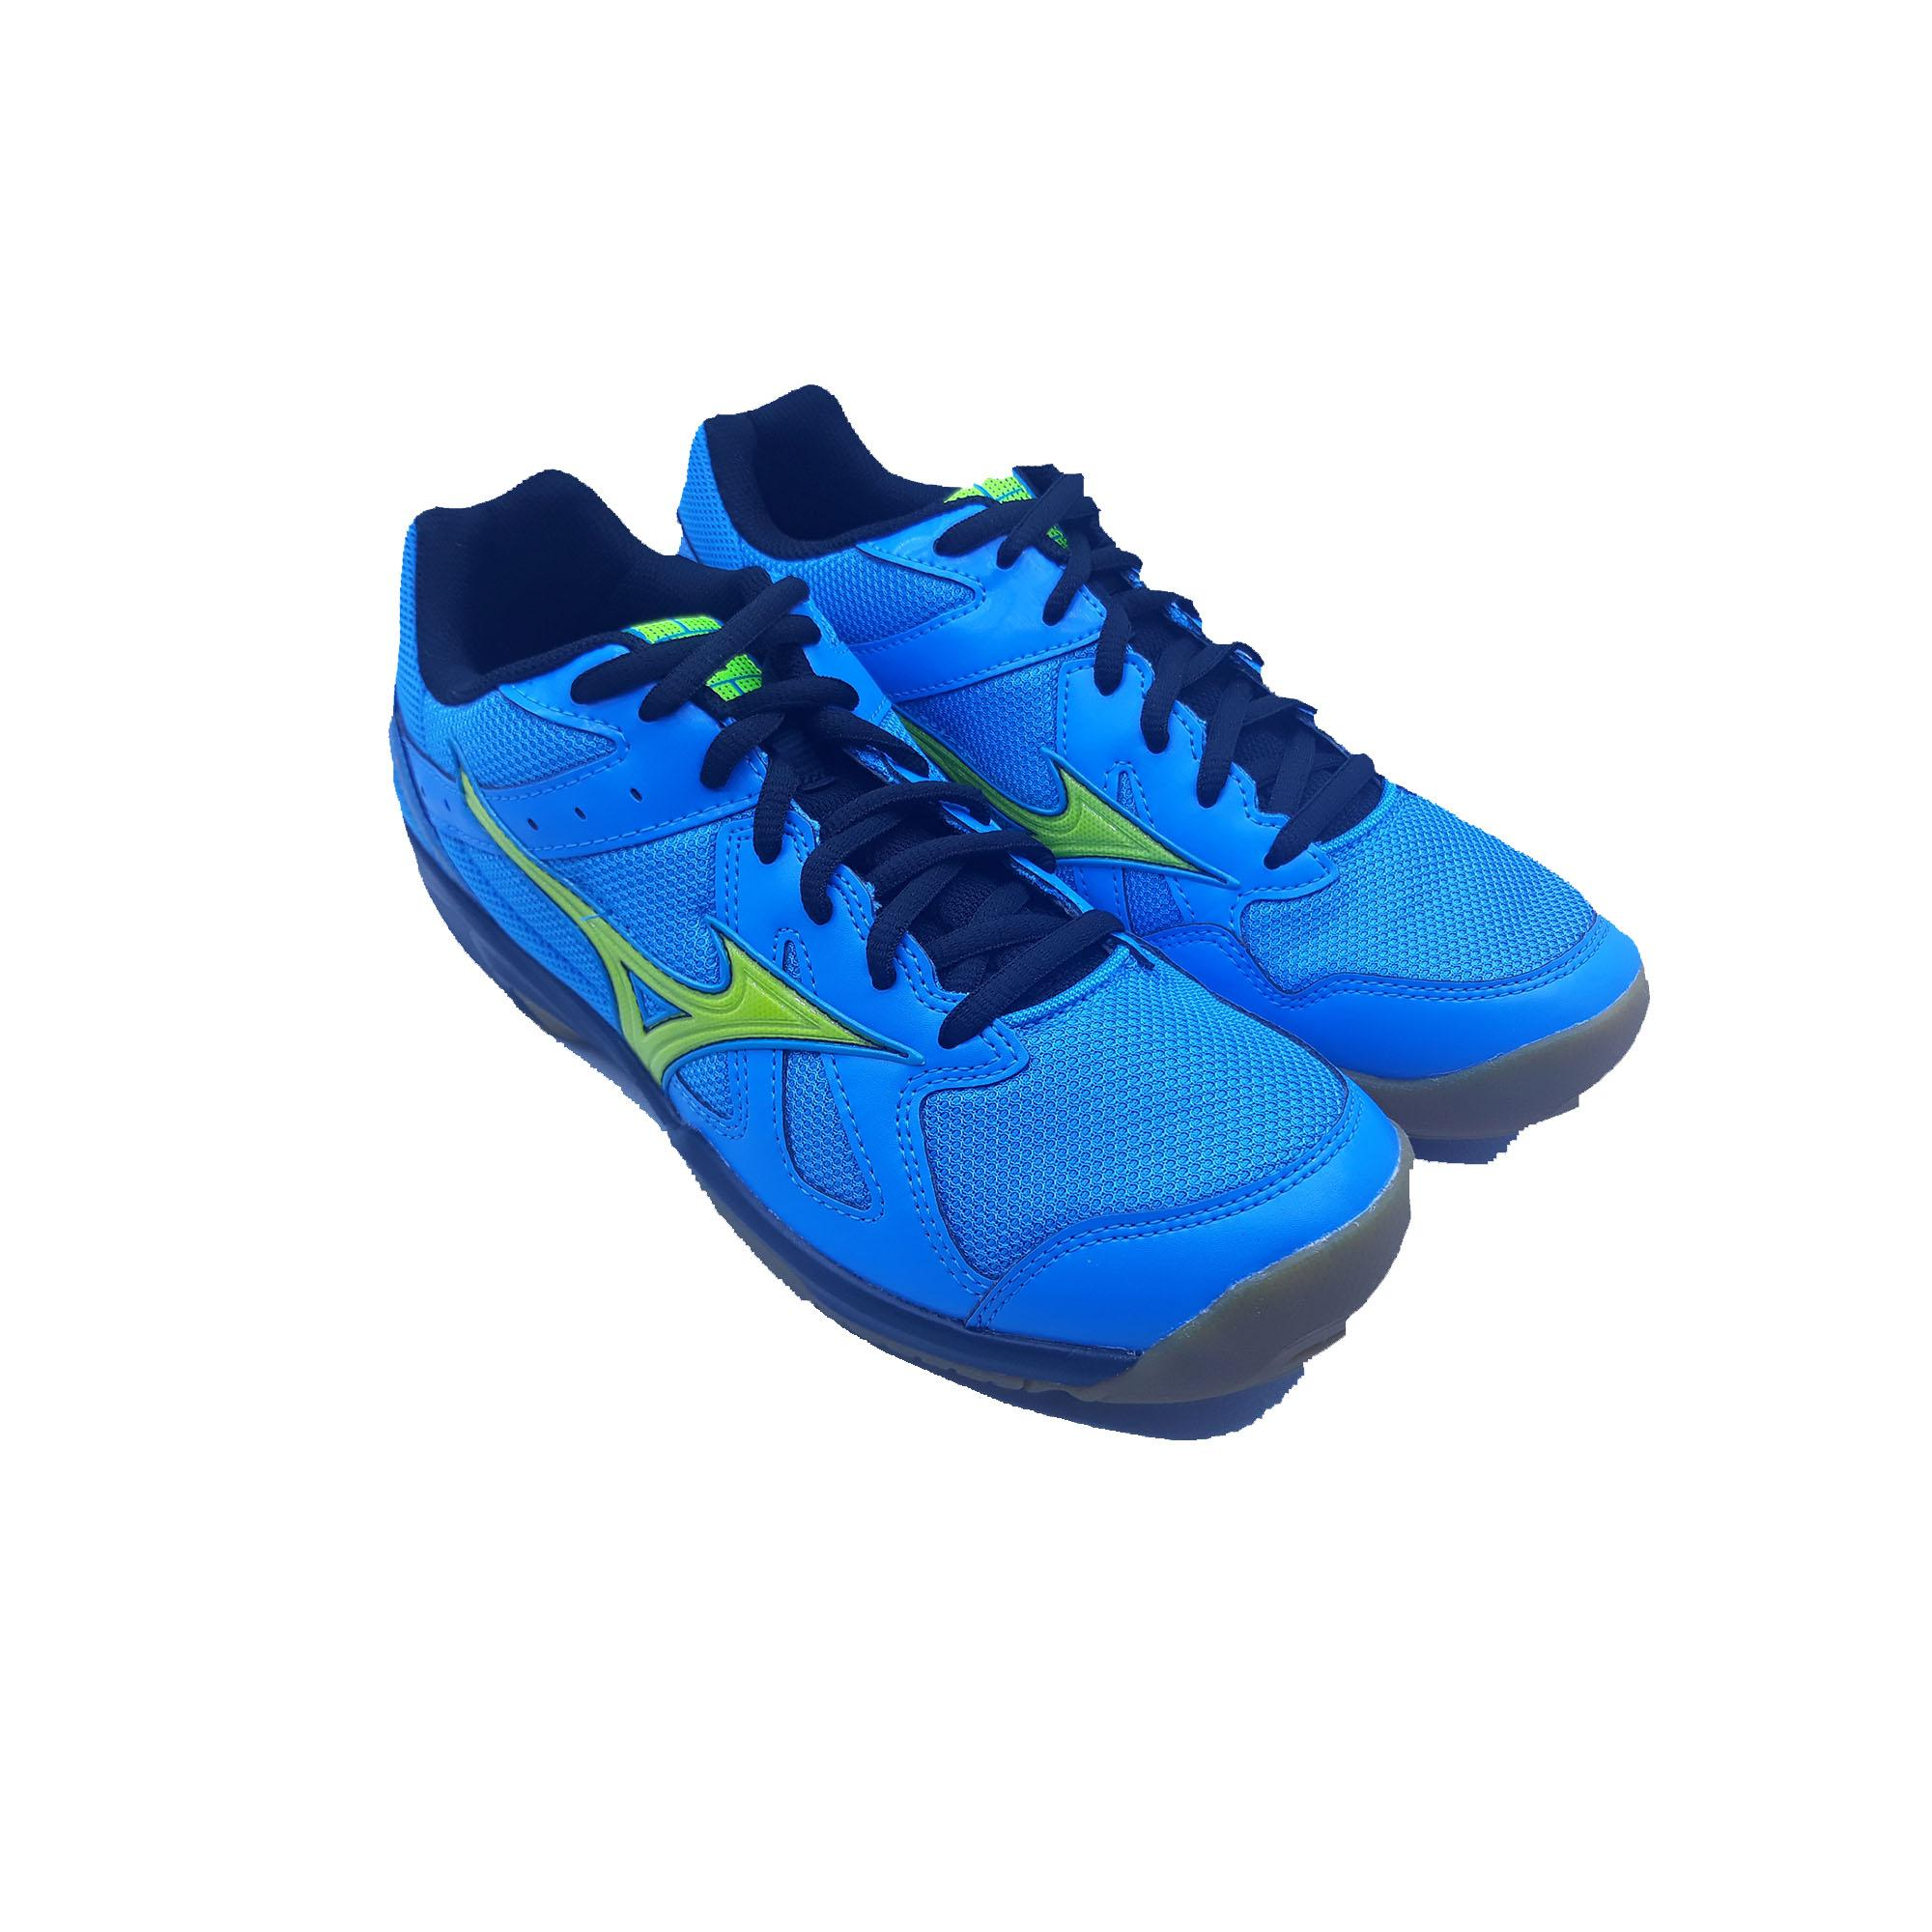 Sepatu Voli Mizuno Cyclone Speed - Blue Yellow Black 0f8c3237f0